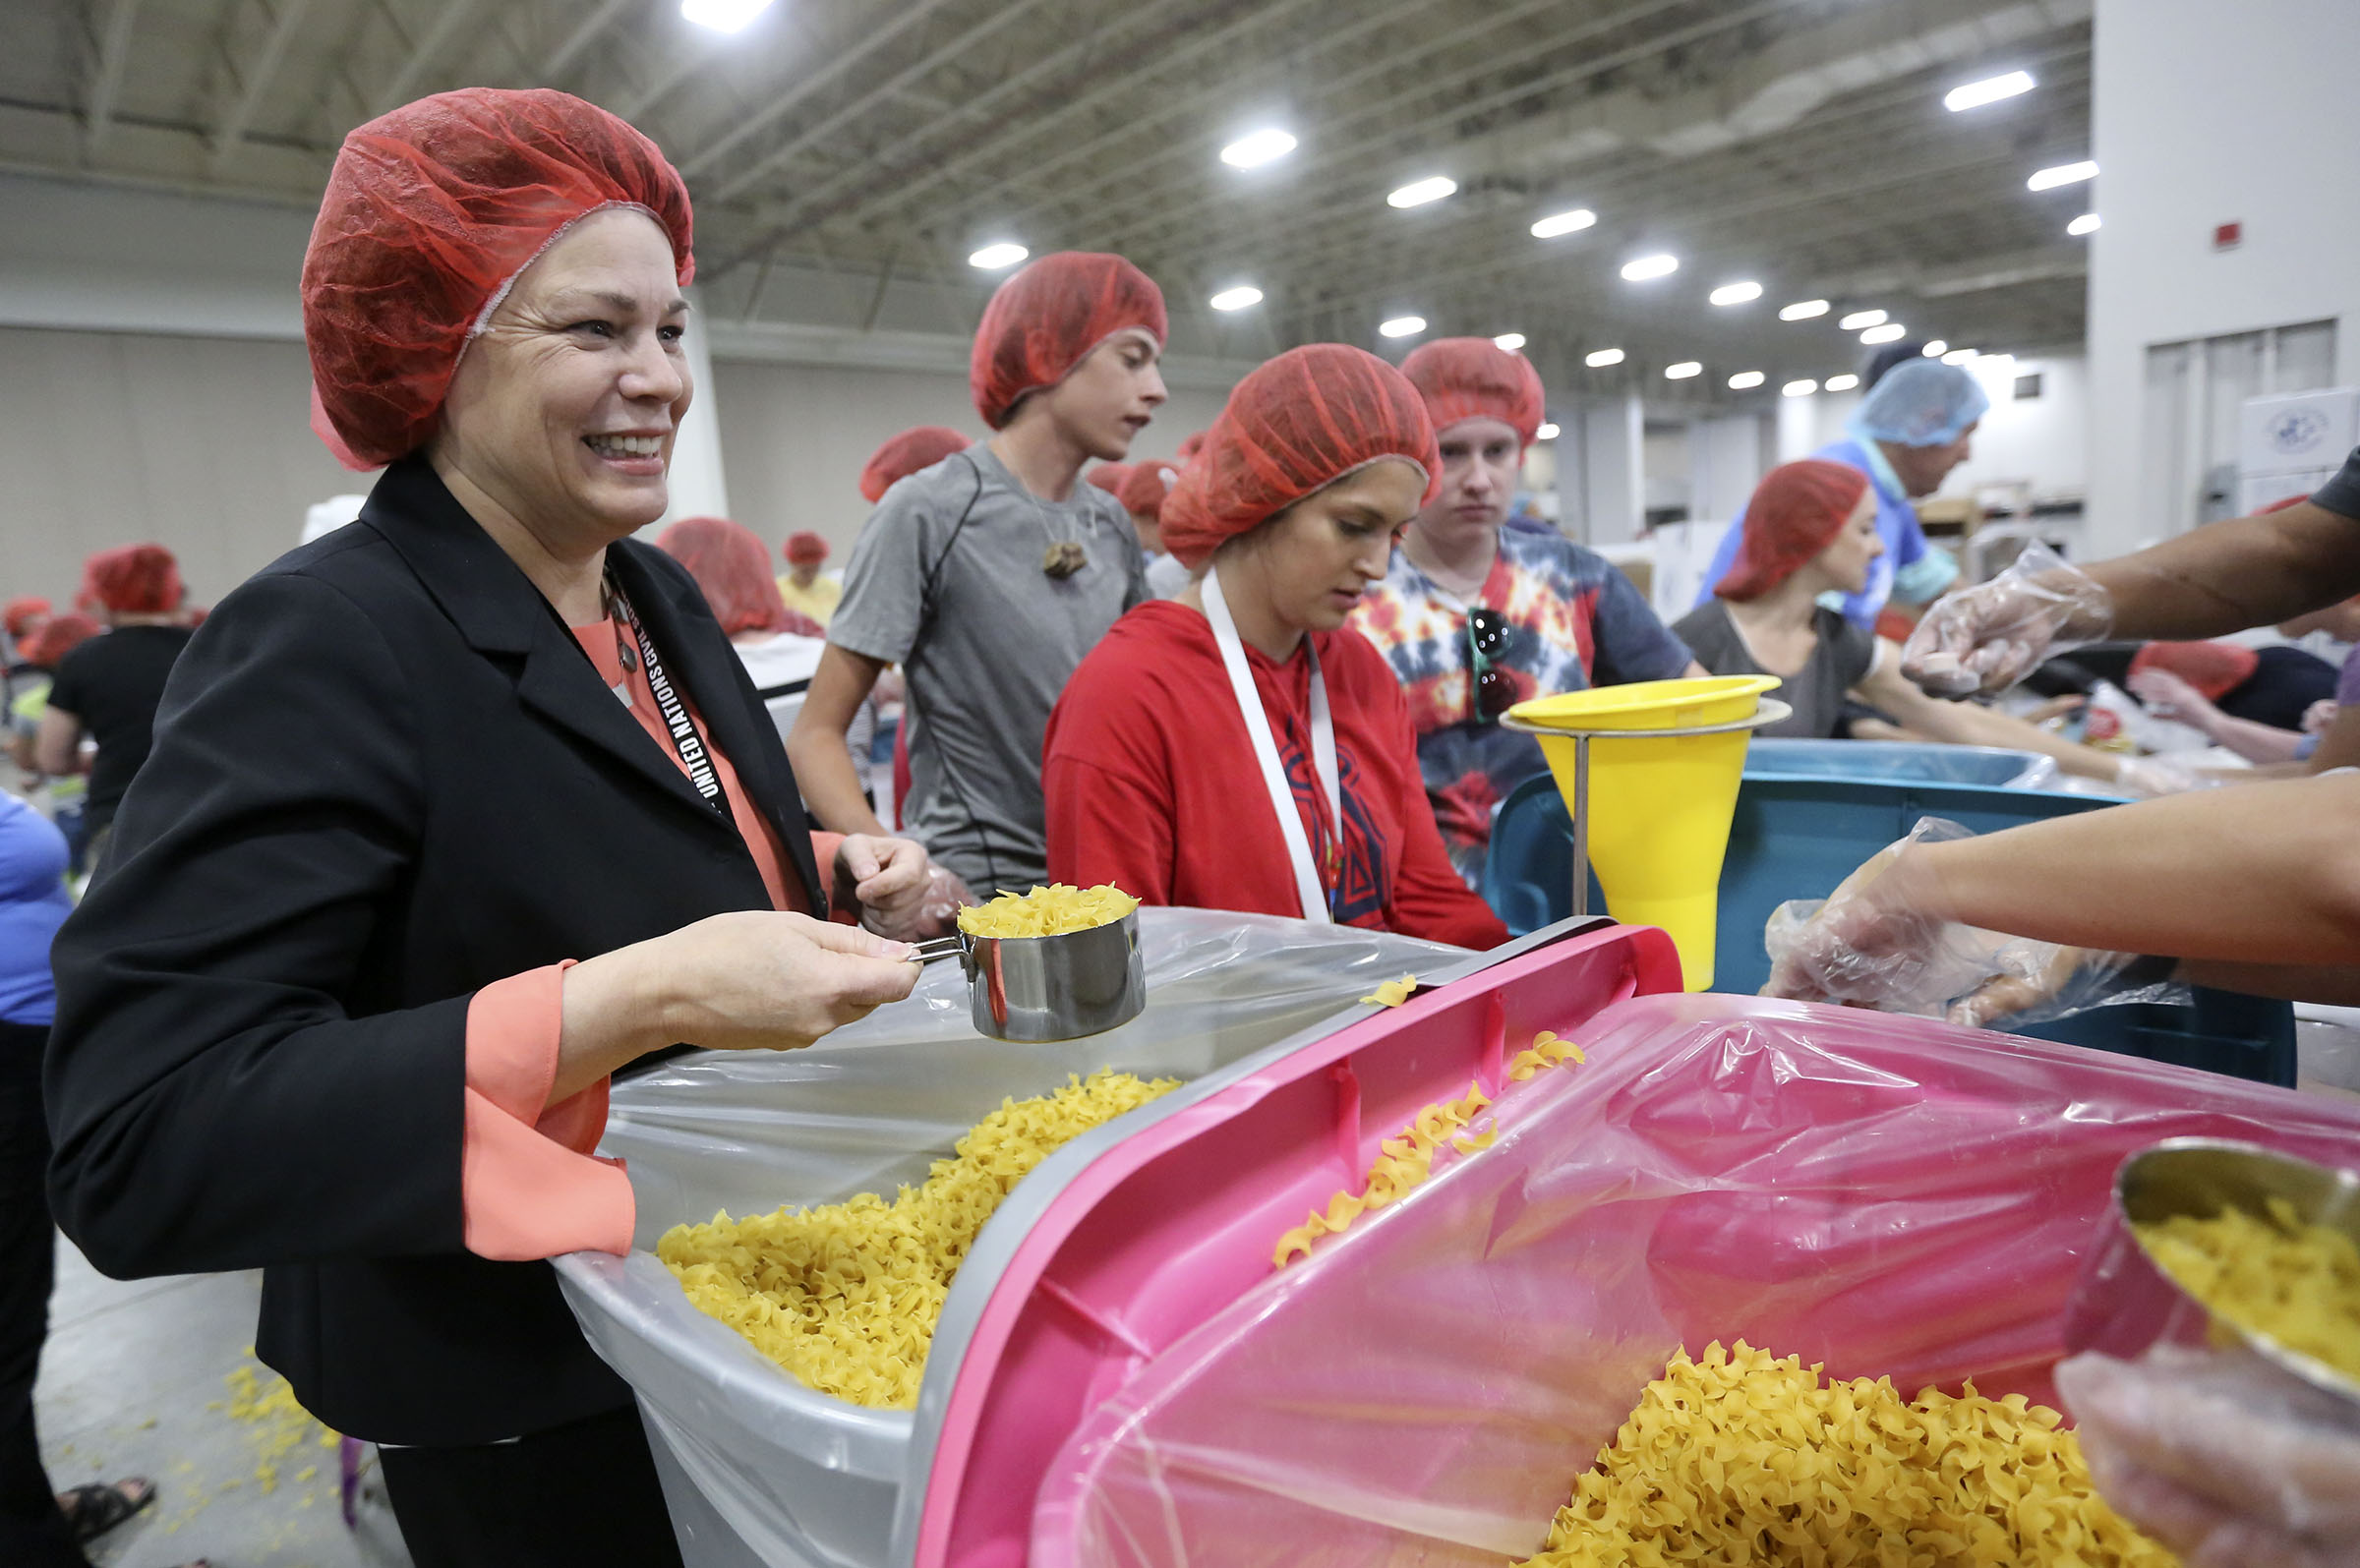 Sister Sharon Eubank, first counselor in the Church of Jesus Christ of Latter-day Saints Relief Society general presidency, packages pasta dinners for a service project during the 68th United Nations Civil Society Conference at the Salt Palace Convention Center in Salt Lake City on Monday, Aug. 26, 2019.